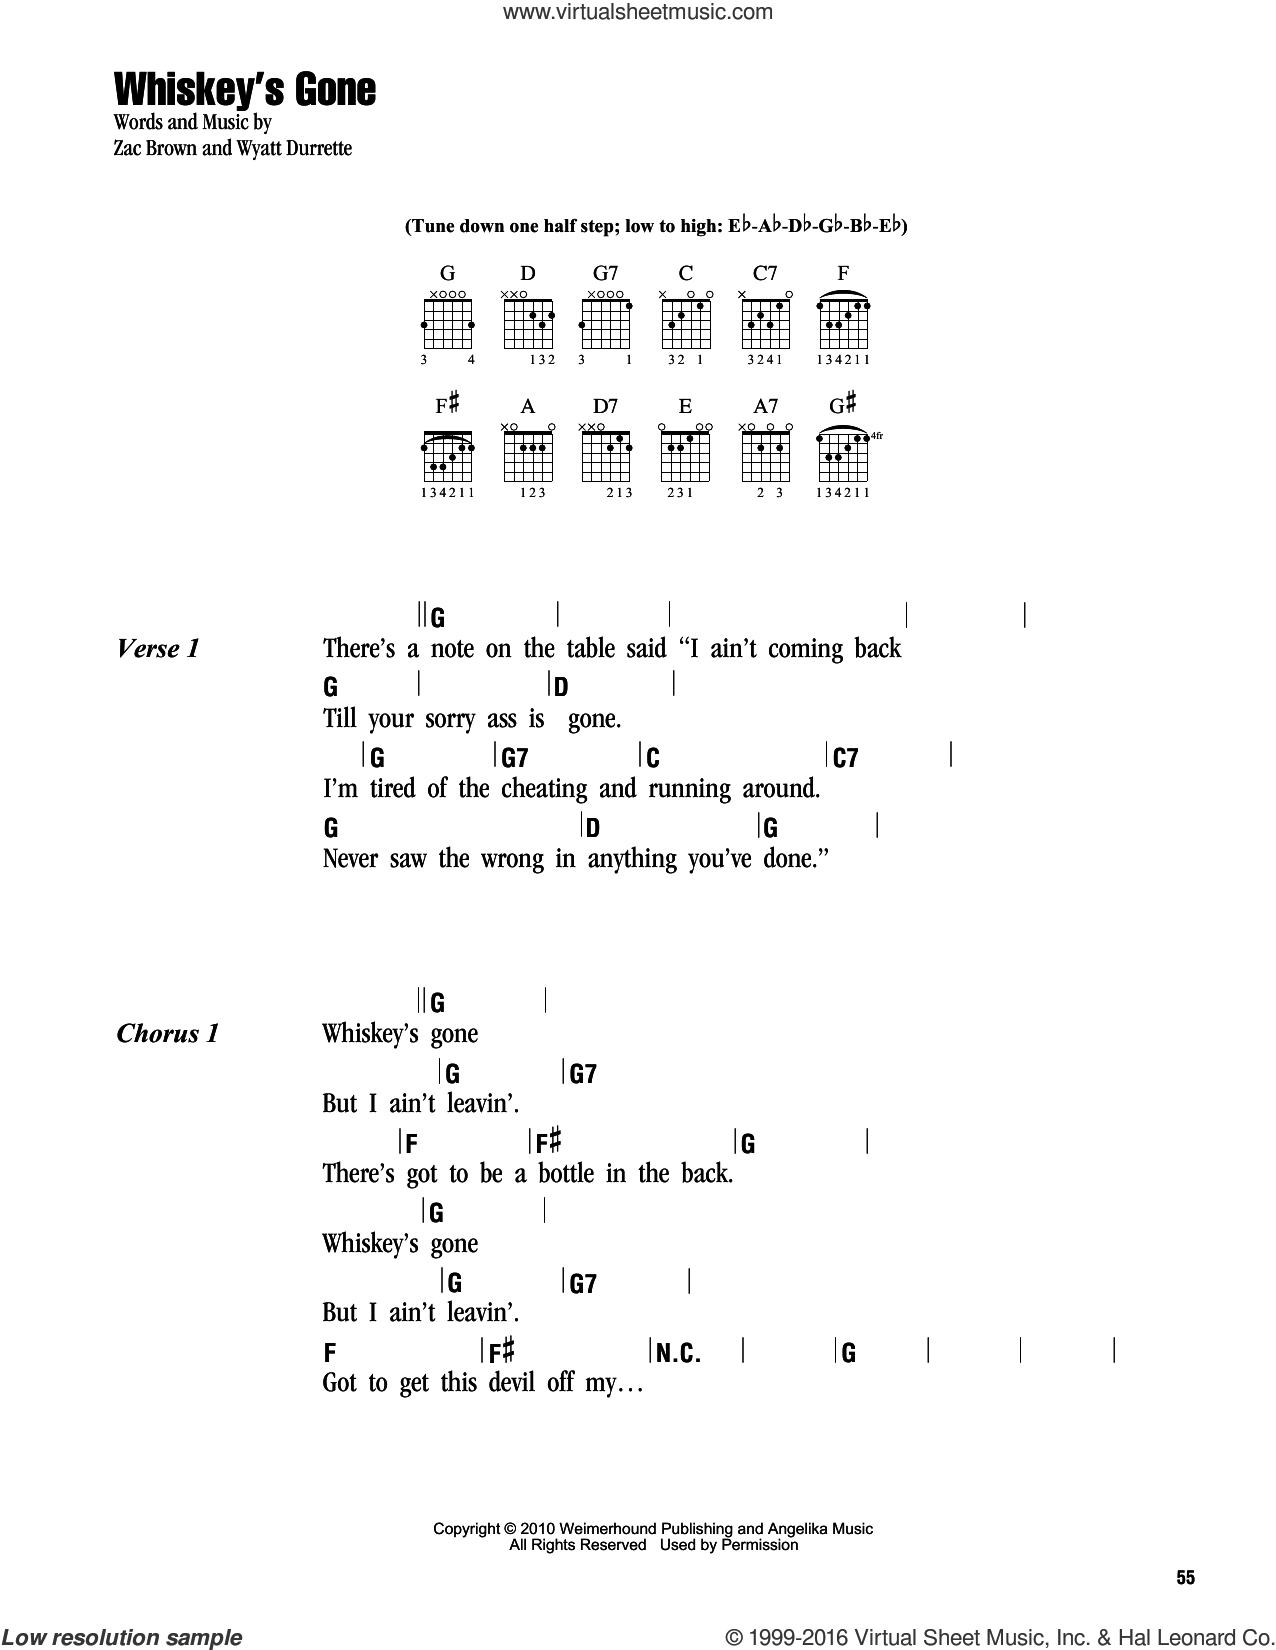 Whiskey's Gone sheet music for guitar (chords) by Zac Brown Band, Wyatt Durrette and Zac Brown, intermediate skill level